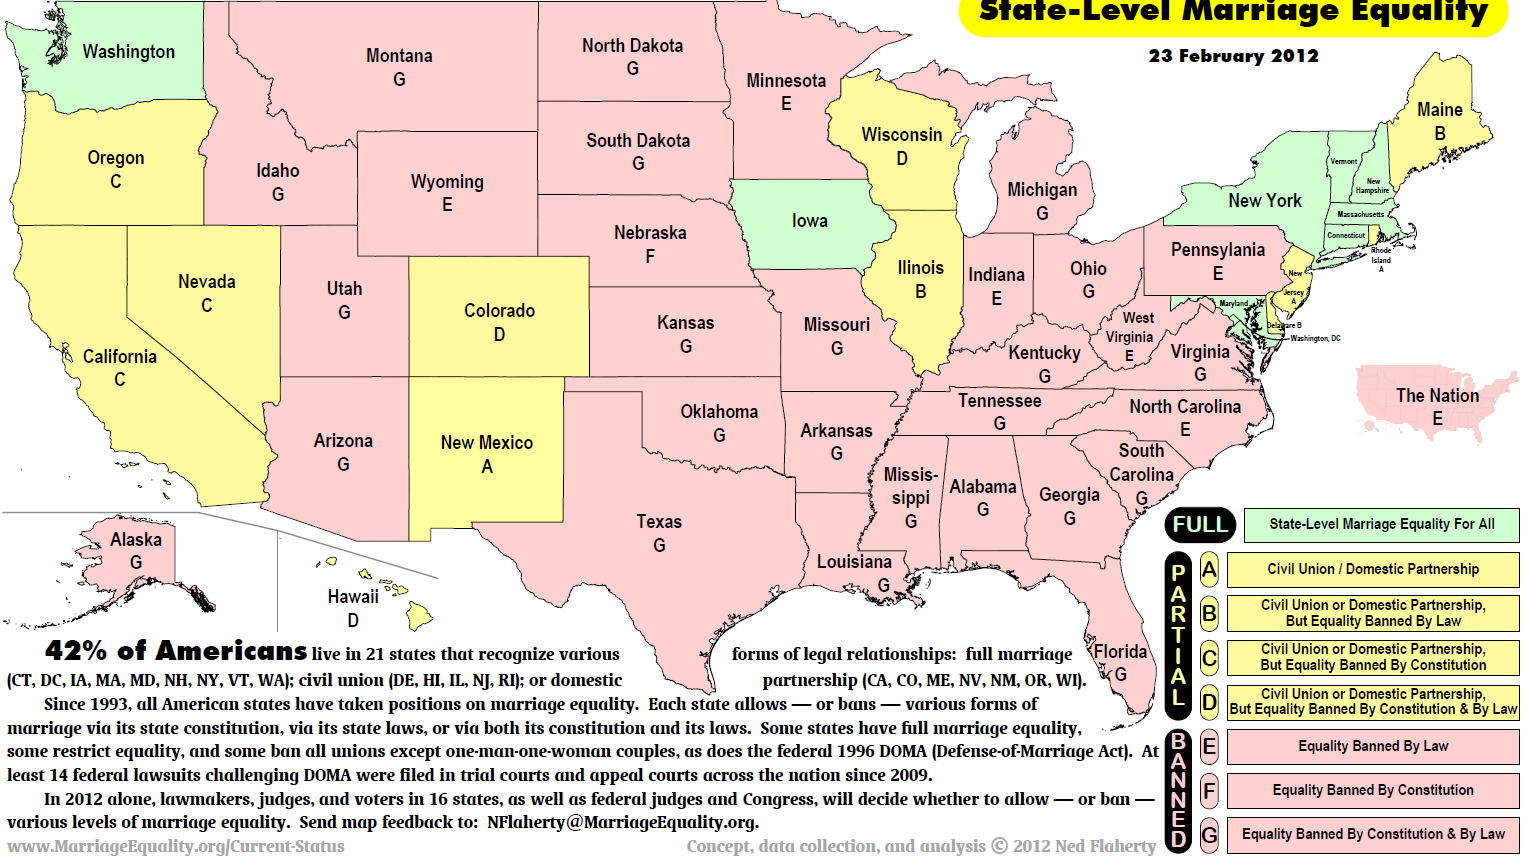 from Kane what are the states that allow gay marriage